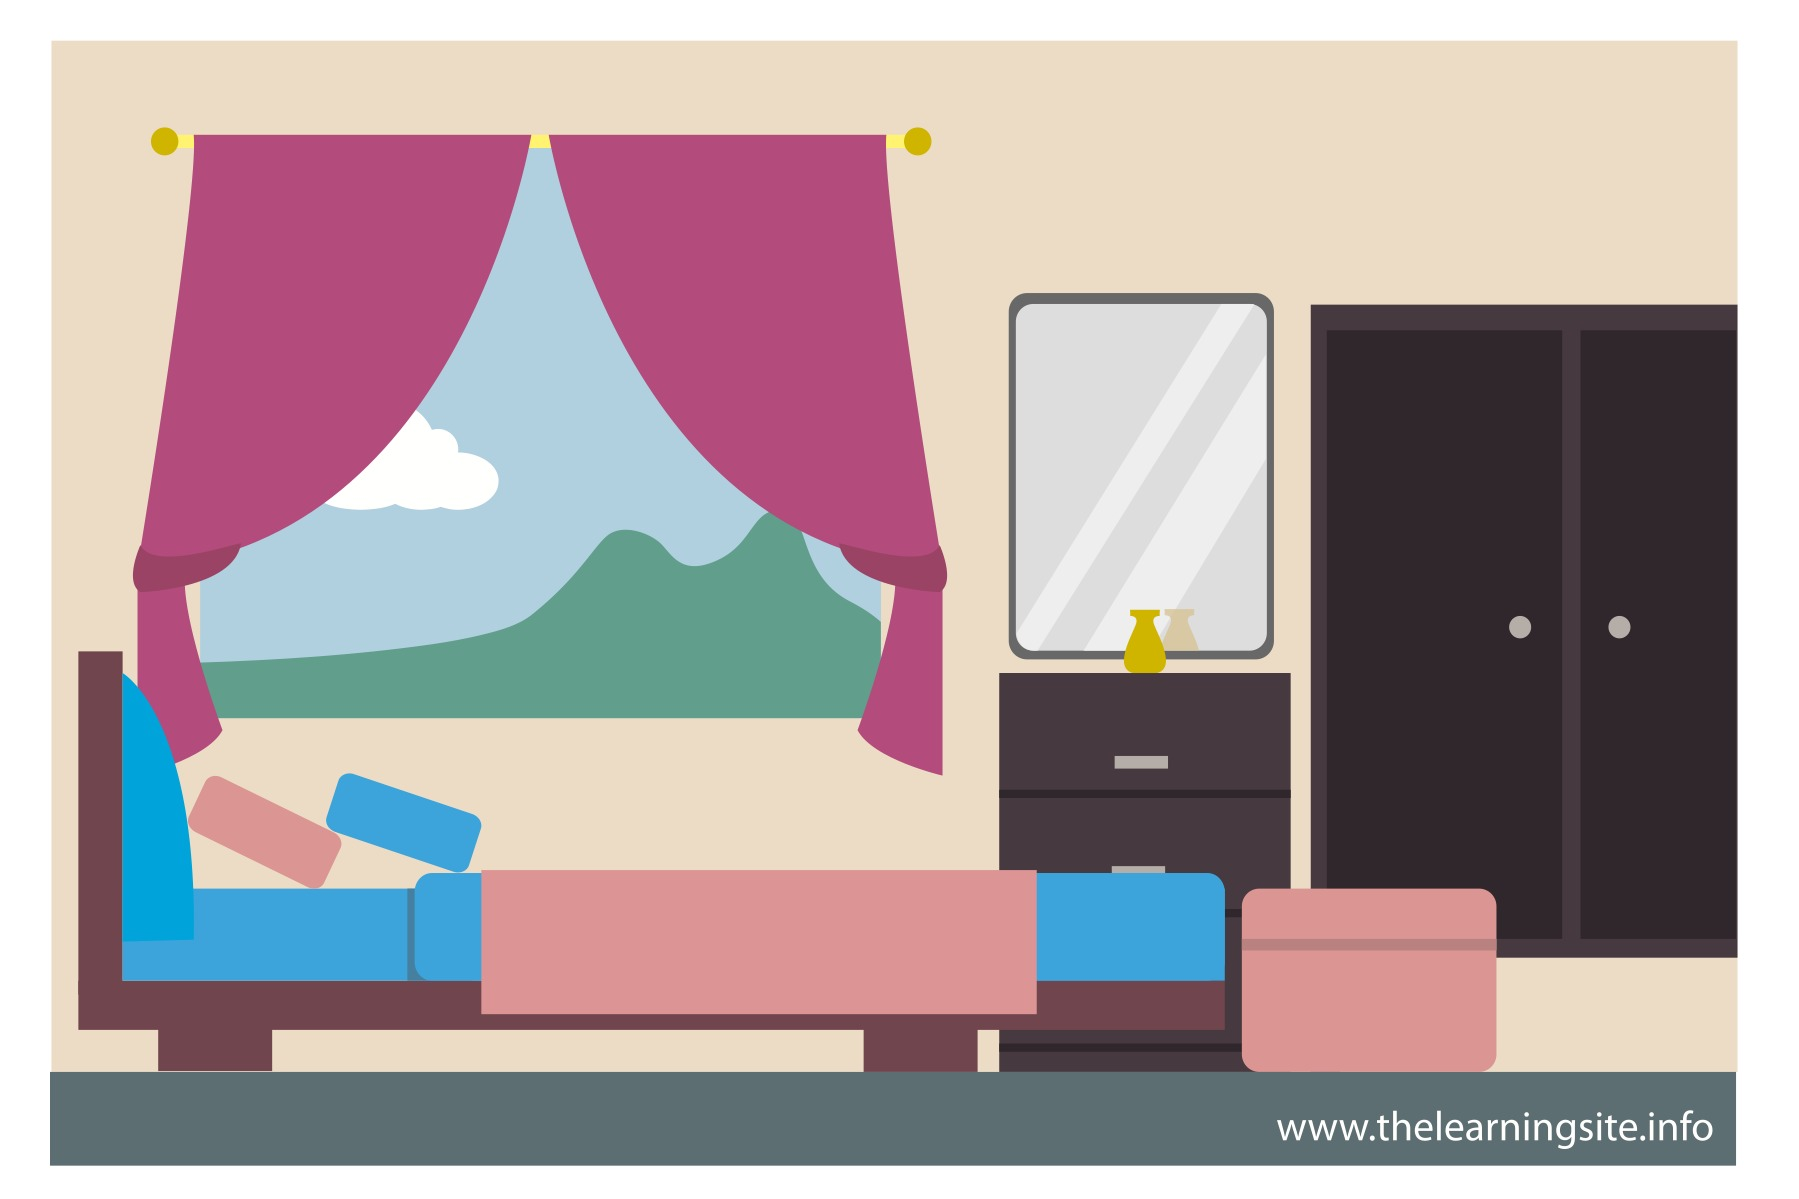 flashcard-part-of-a-house-bedroom